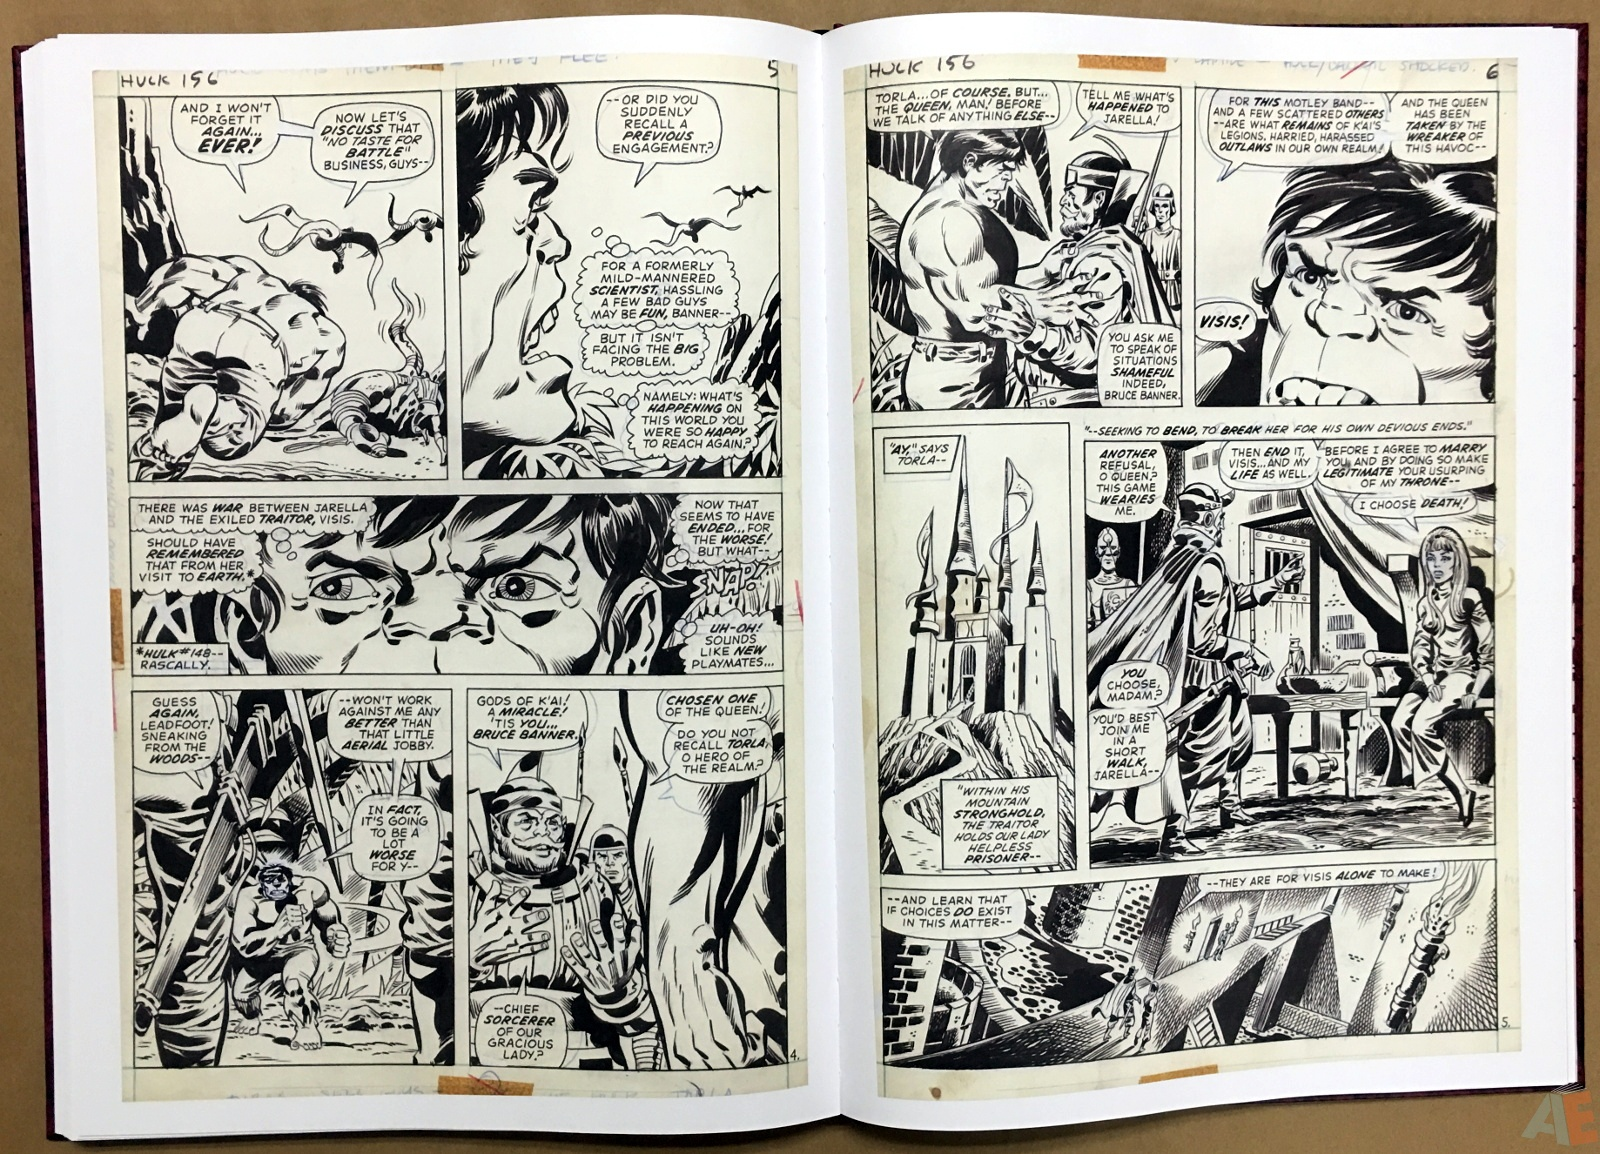 Herb Trimpe's The Incredible Hulk Artist's Edition 36